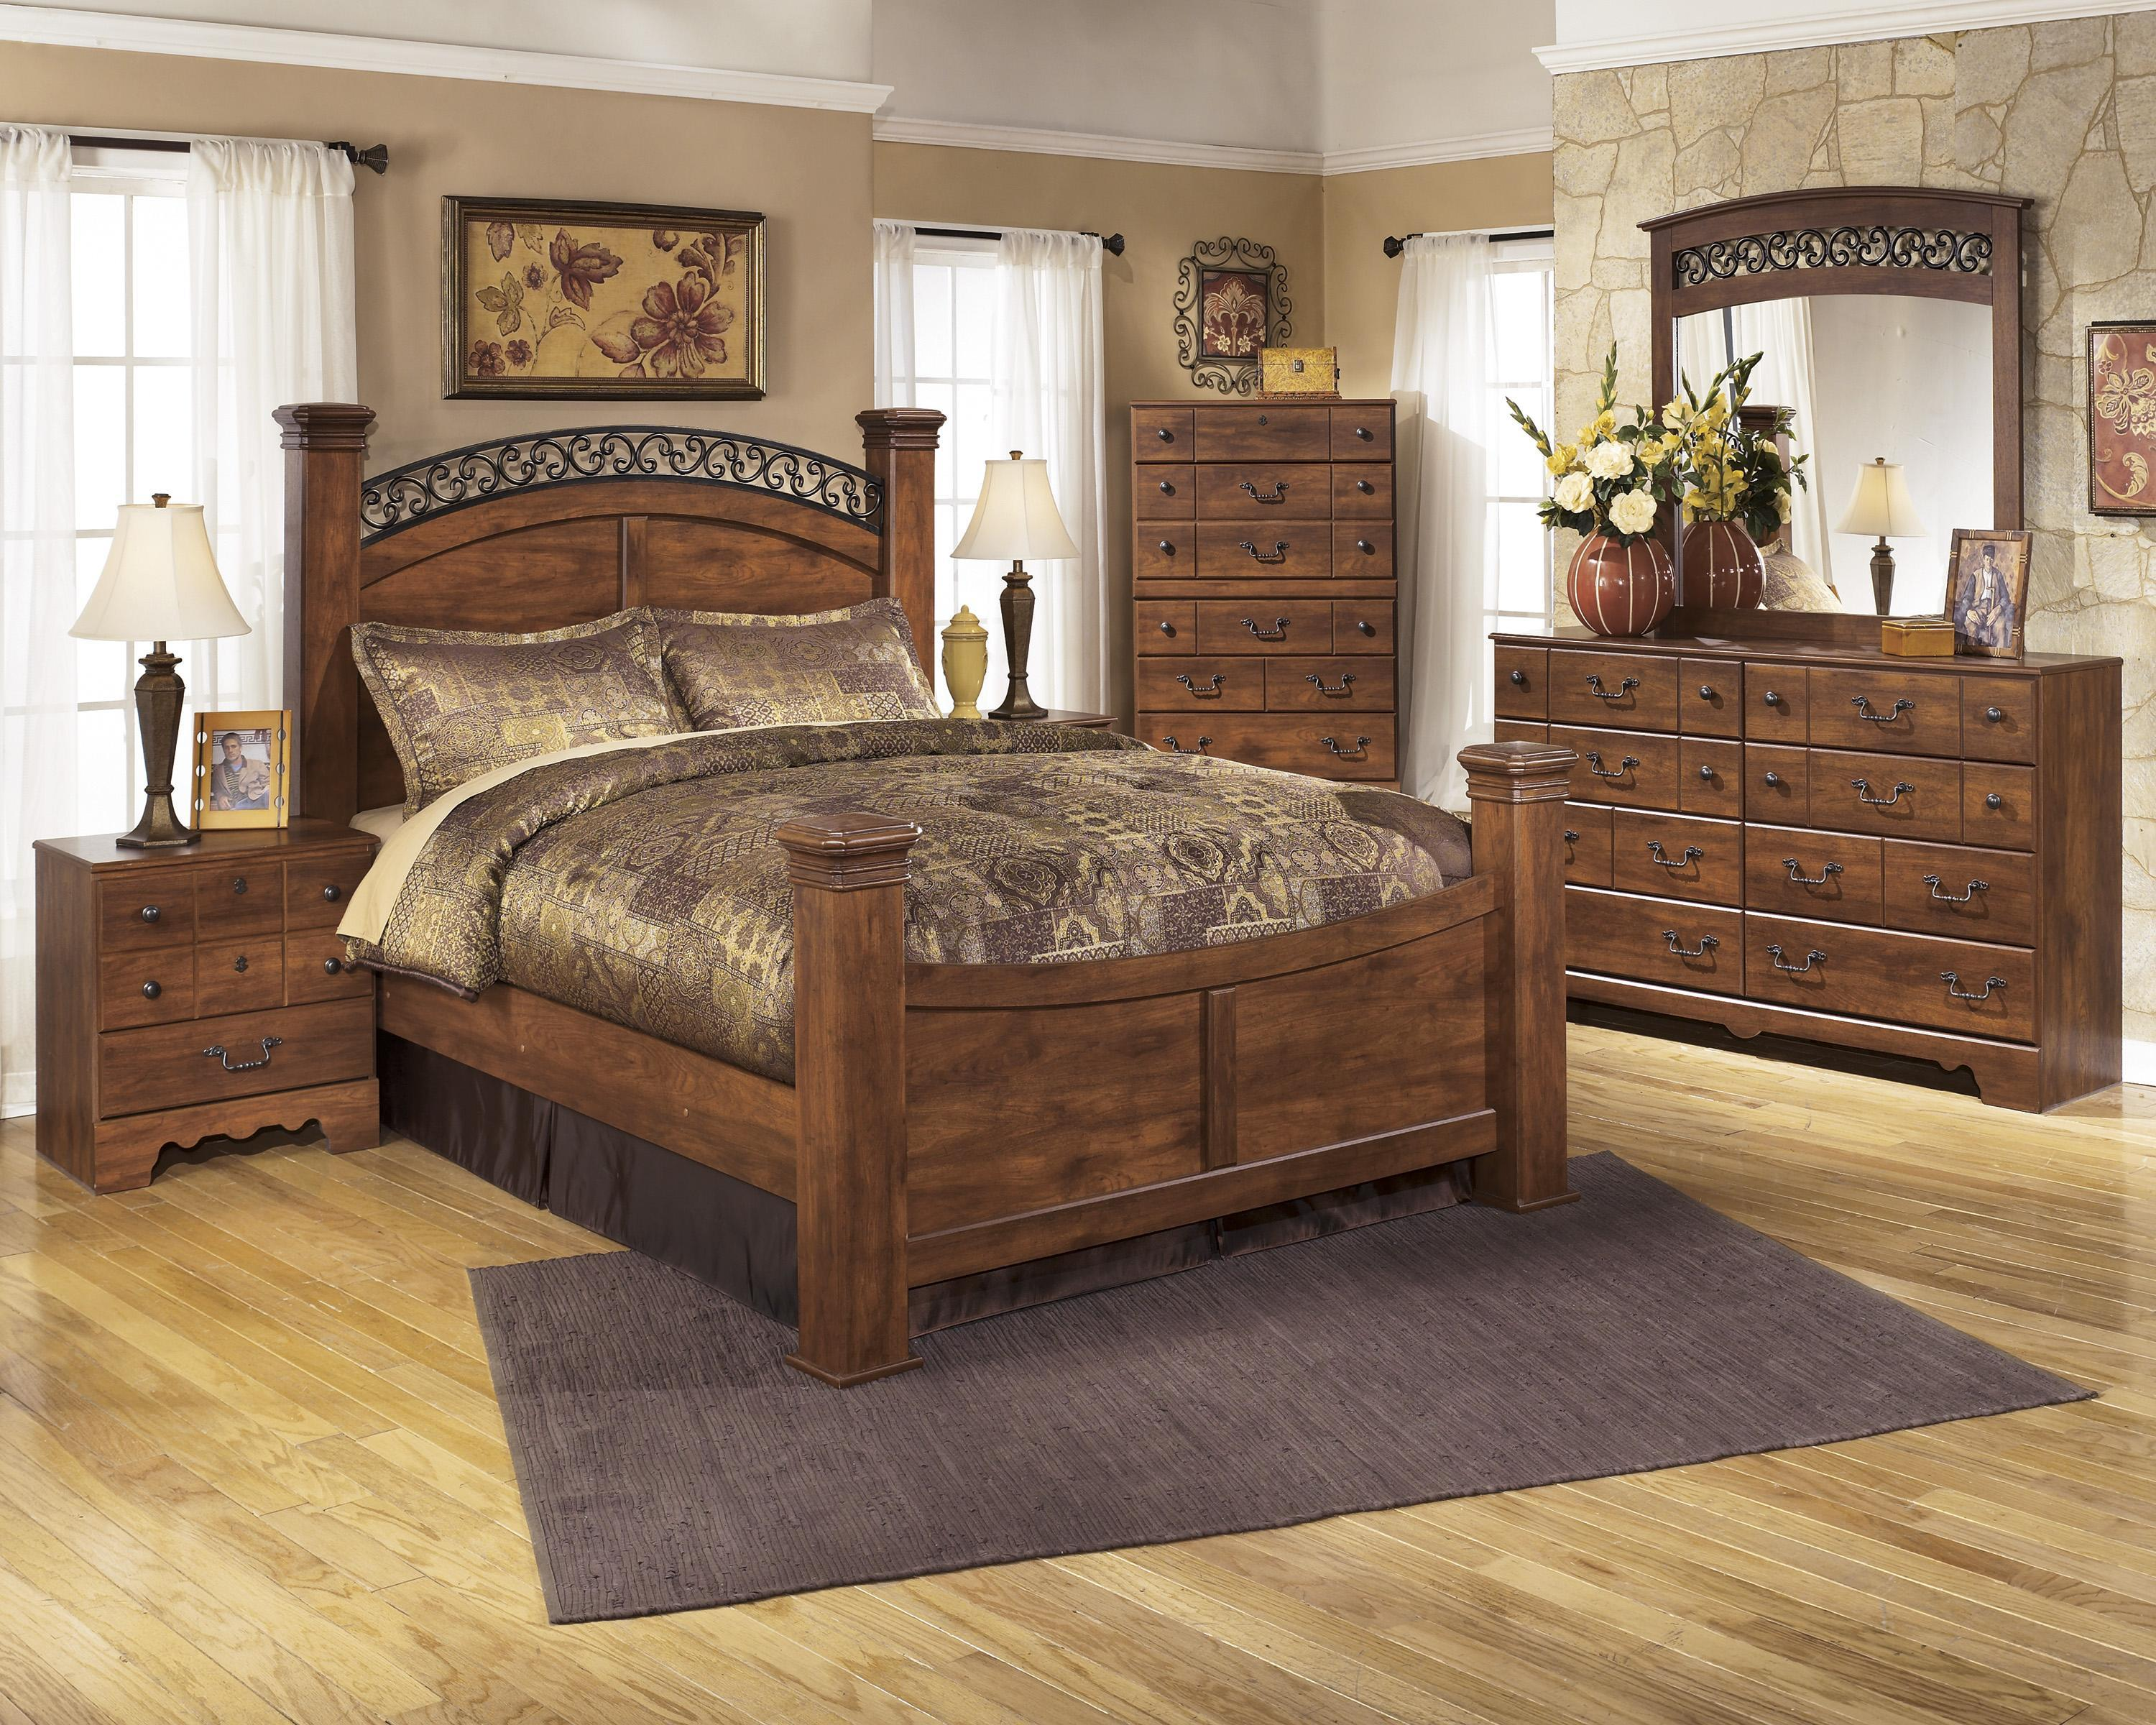 chest dressers null ethan us leora tall front furniture allen en chests images shop bedroom